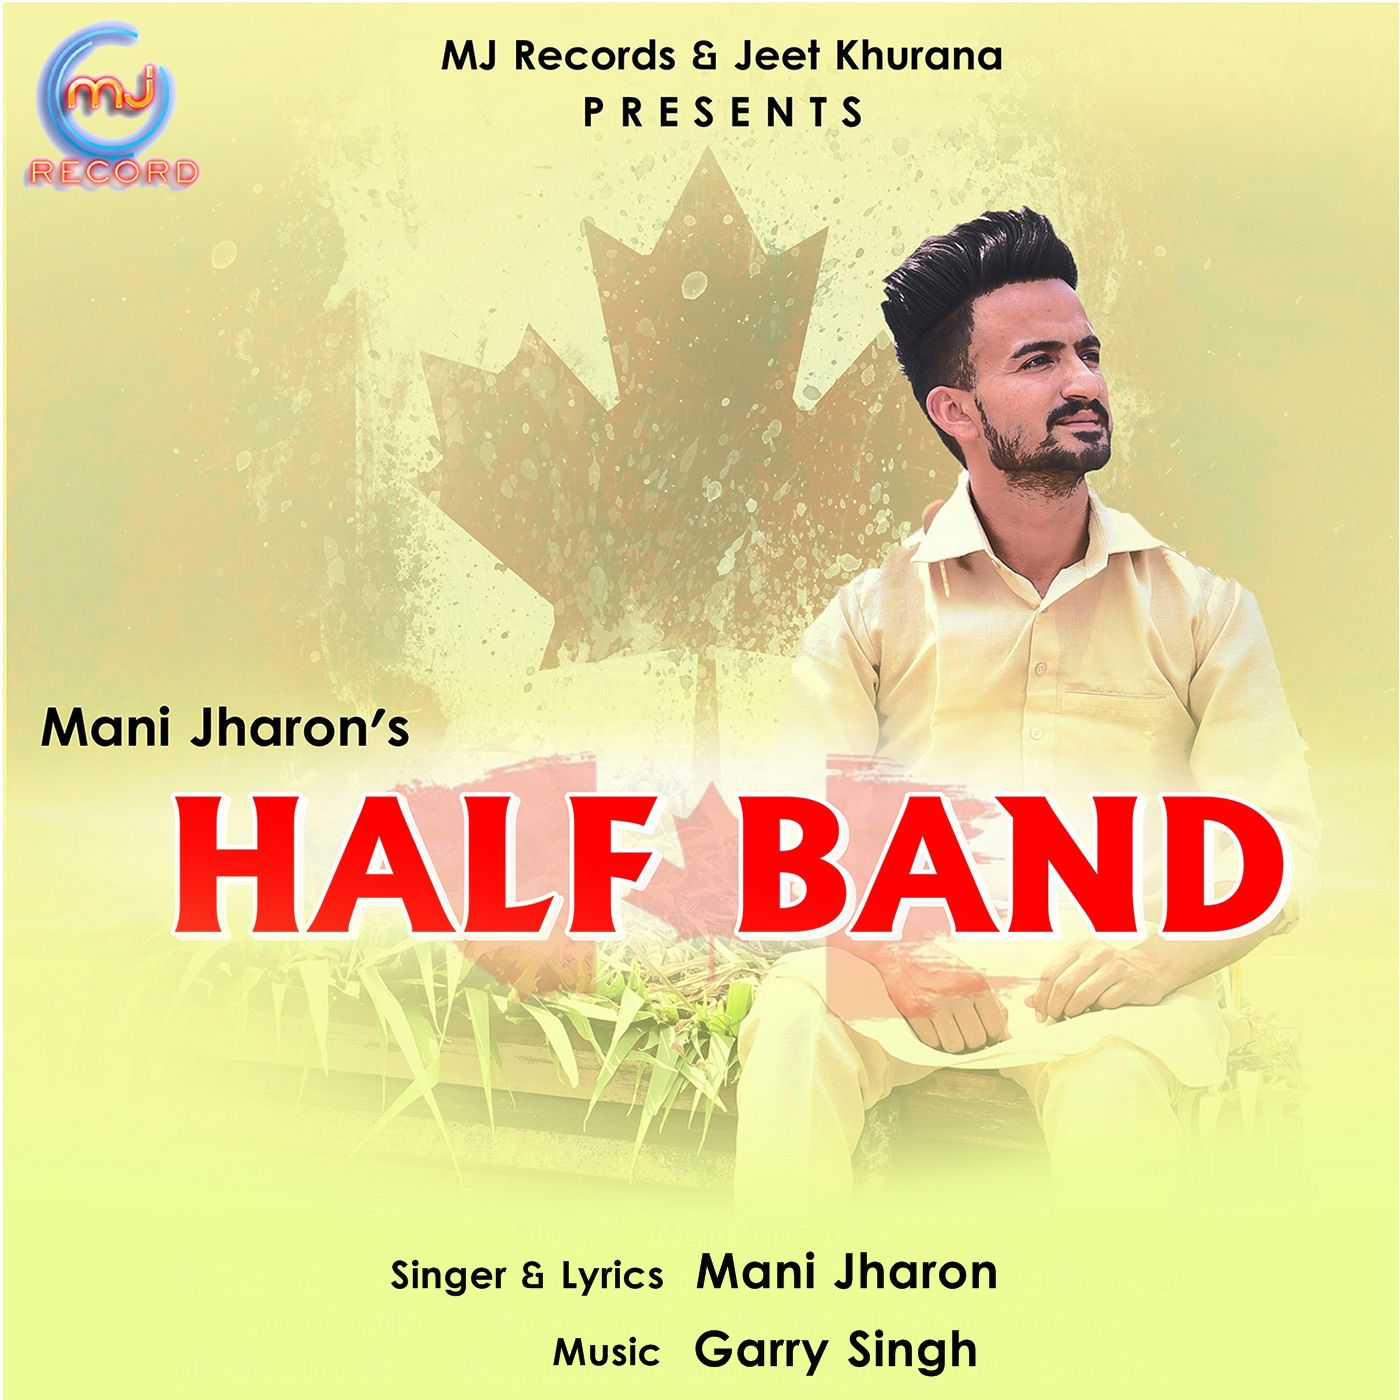 Half Band By Mani jharon full Mp3 song download djounjab mp3mad